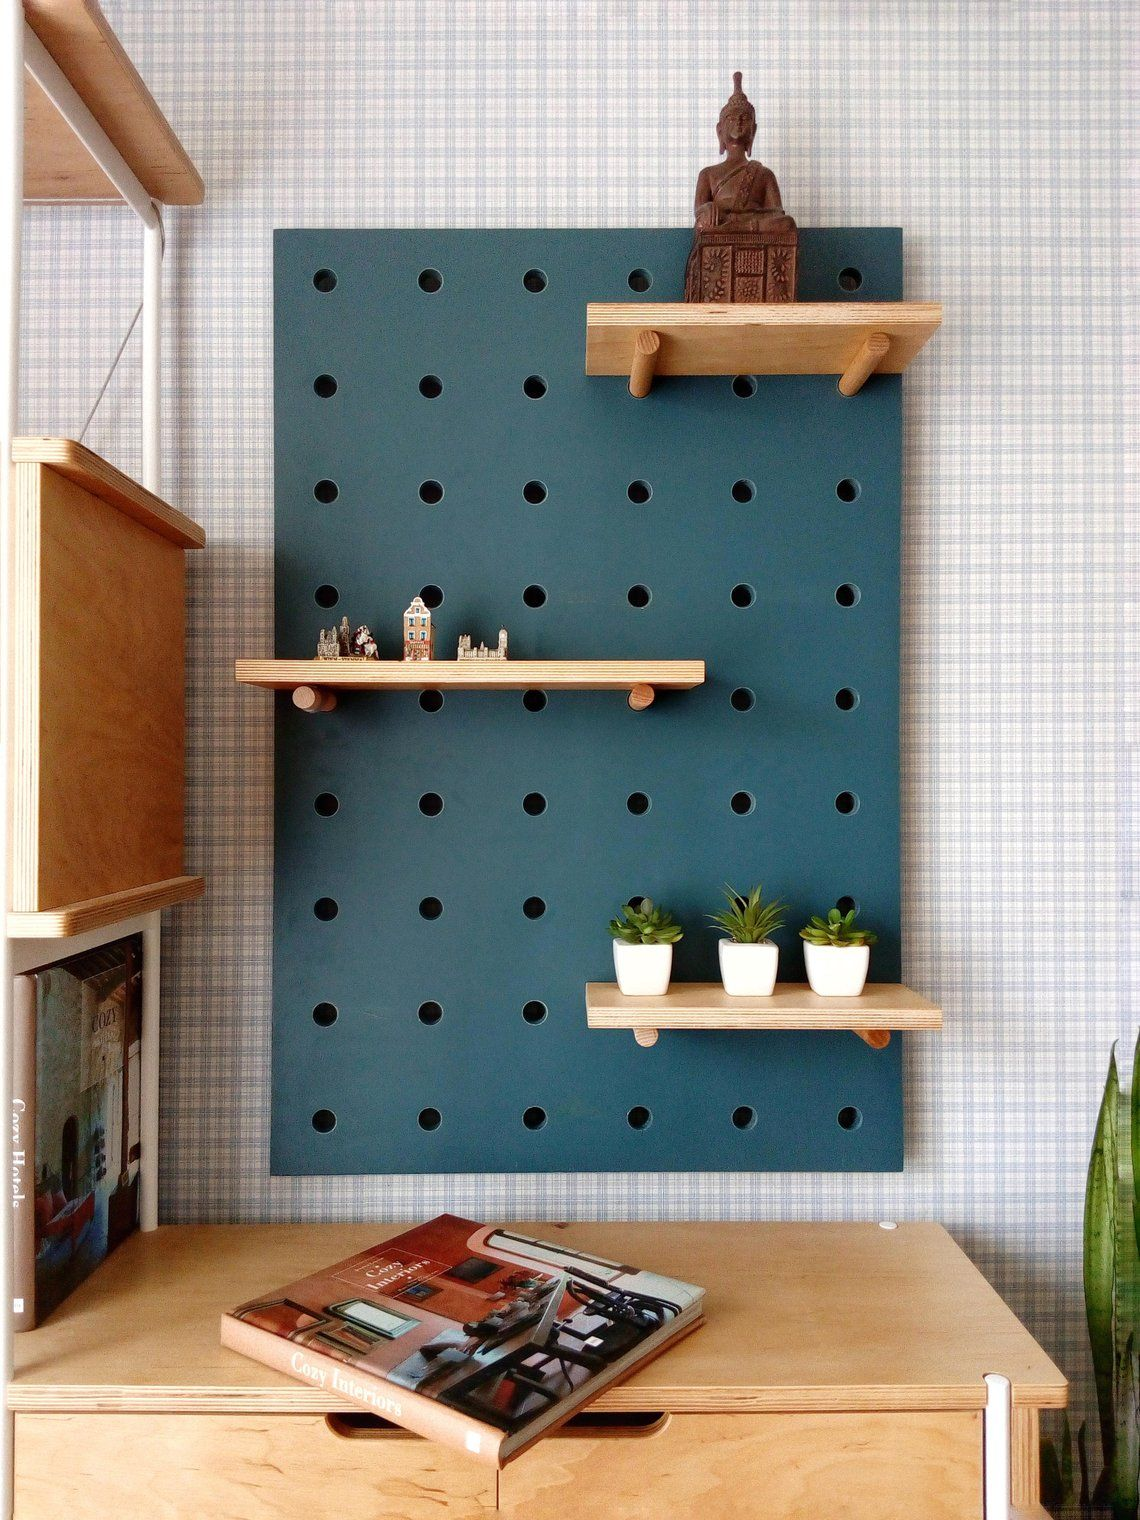 Photo of Pegboard organizer, plywood peg board shelf.